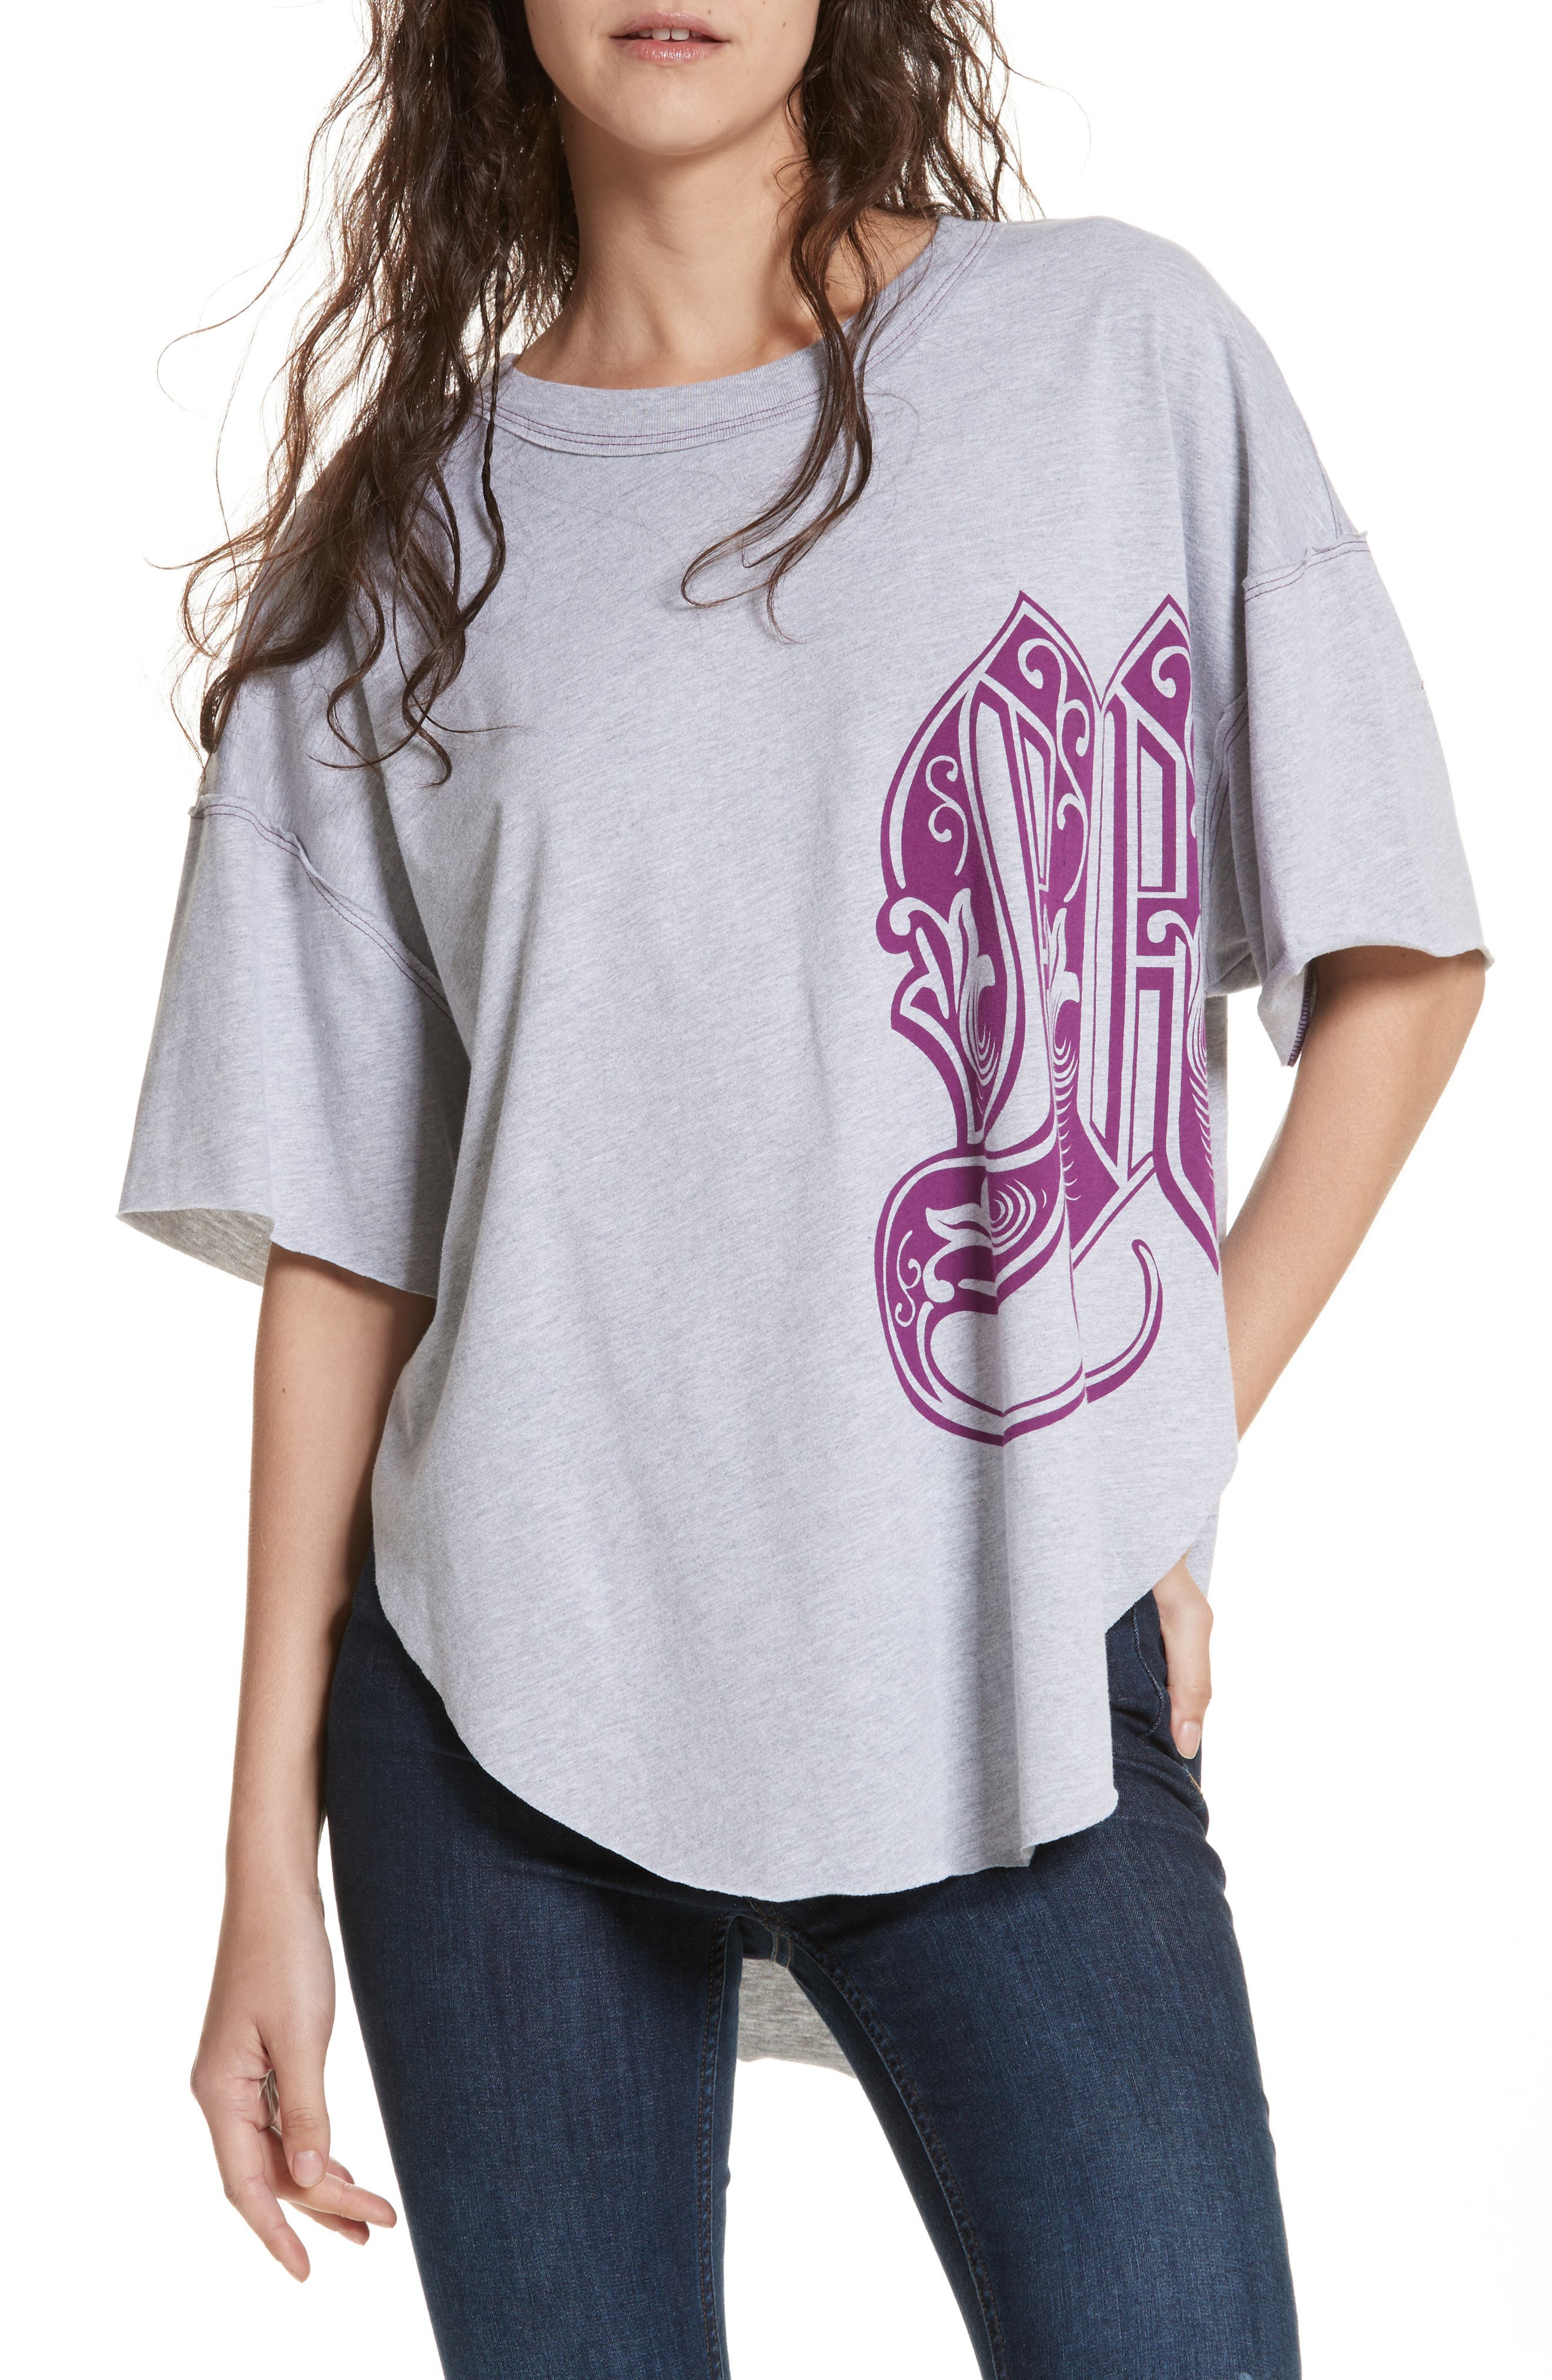 Free People Letter Graphic Tee